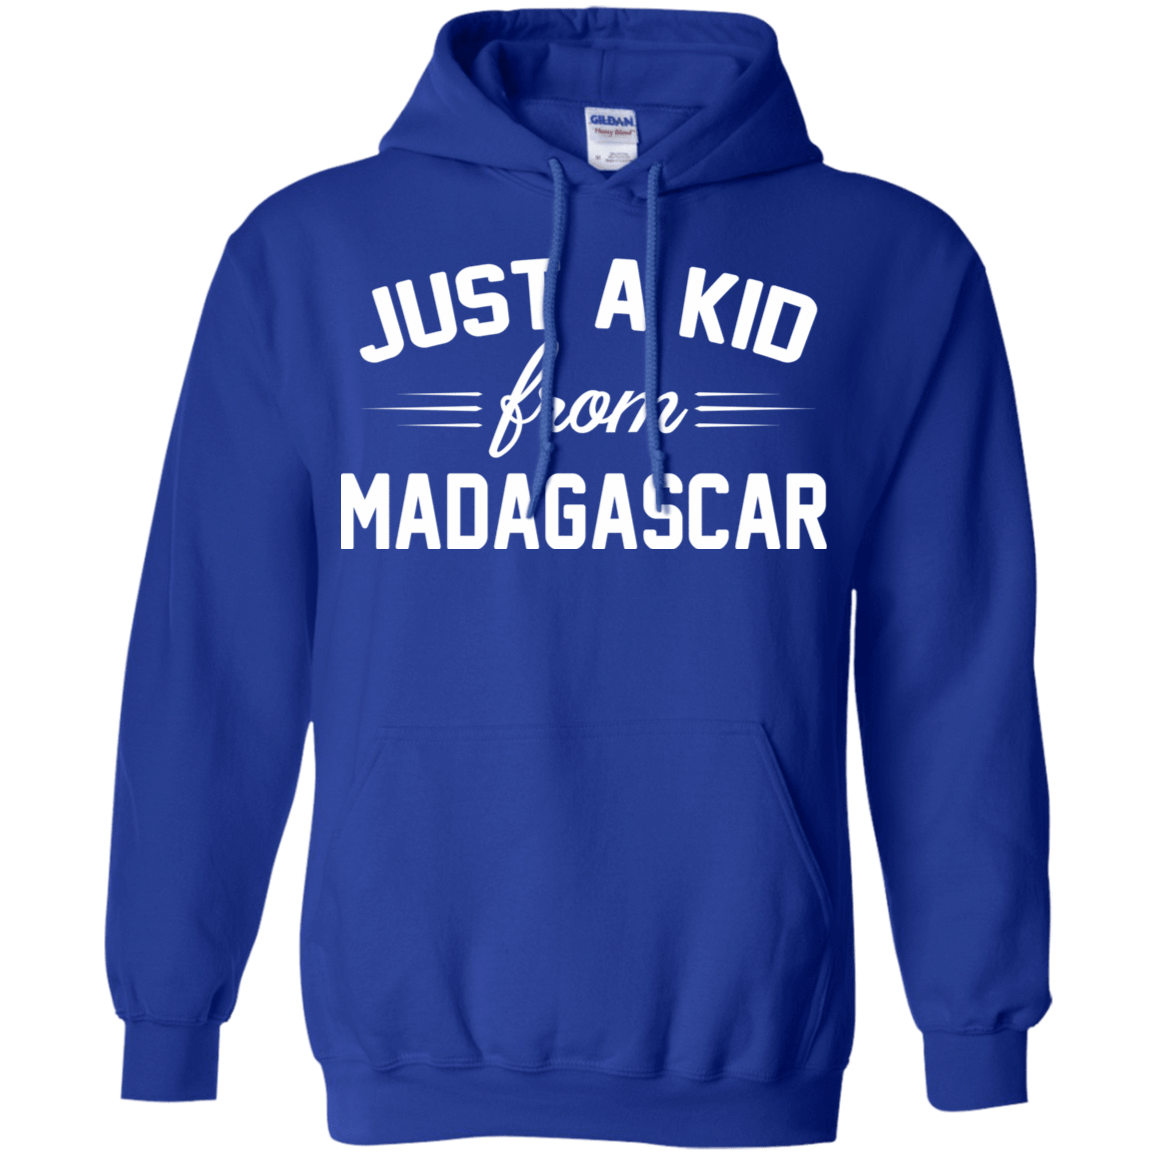 Just a Kid Store | Madagascar T-Shirts, Hoodie, Tank 541-4765-72091600-23175 - Tee Ript